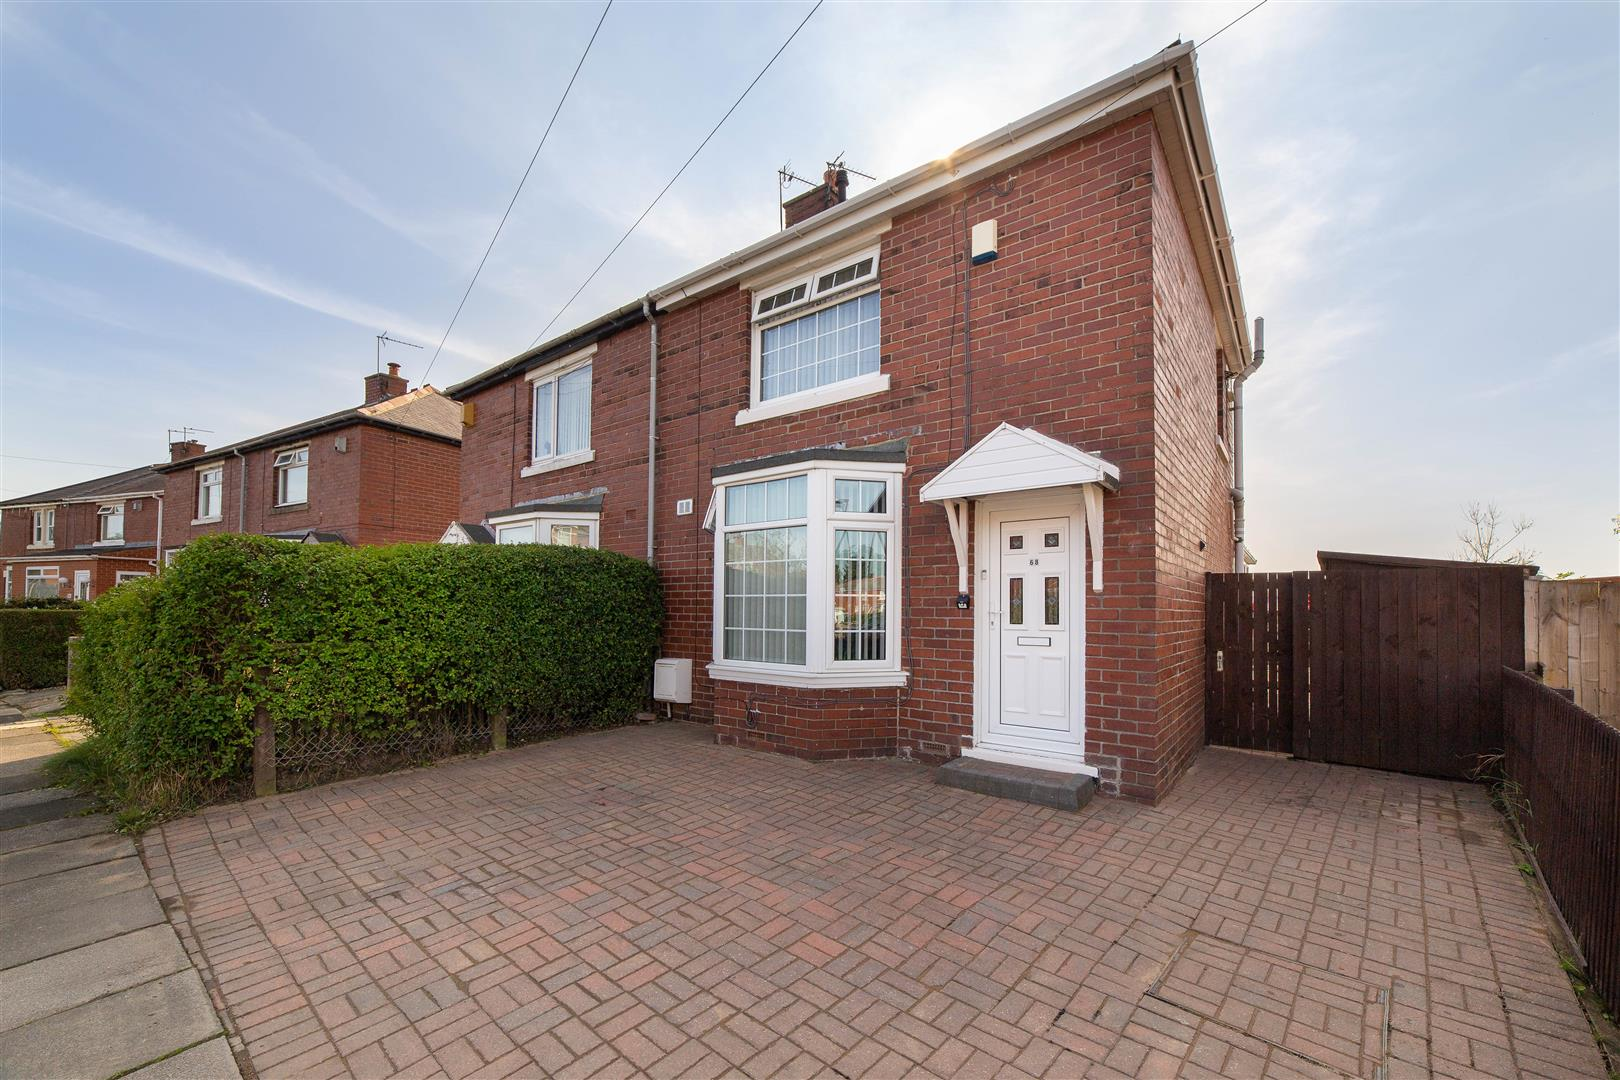 2 bed semi-detached house for sale in Wallsend, NE28 9ES  - Property Image 1